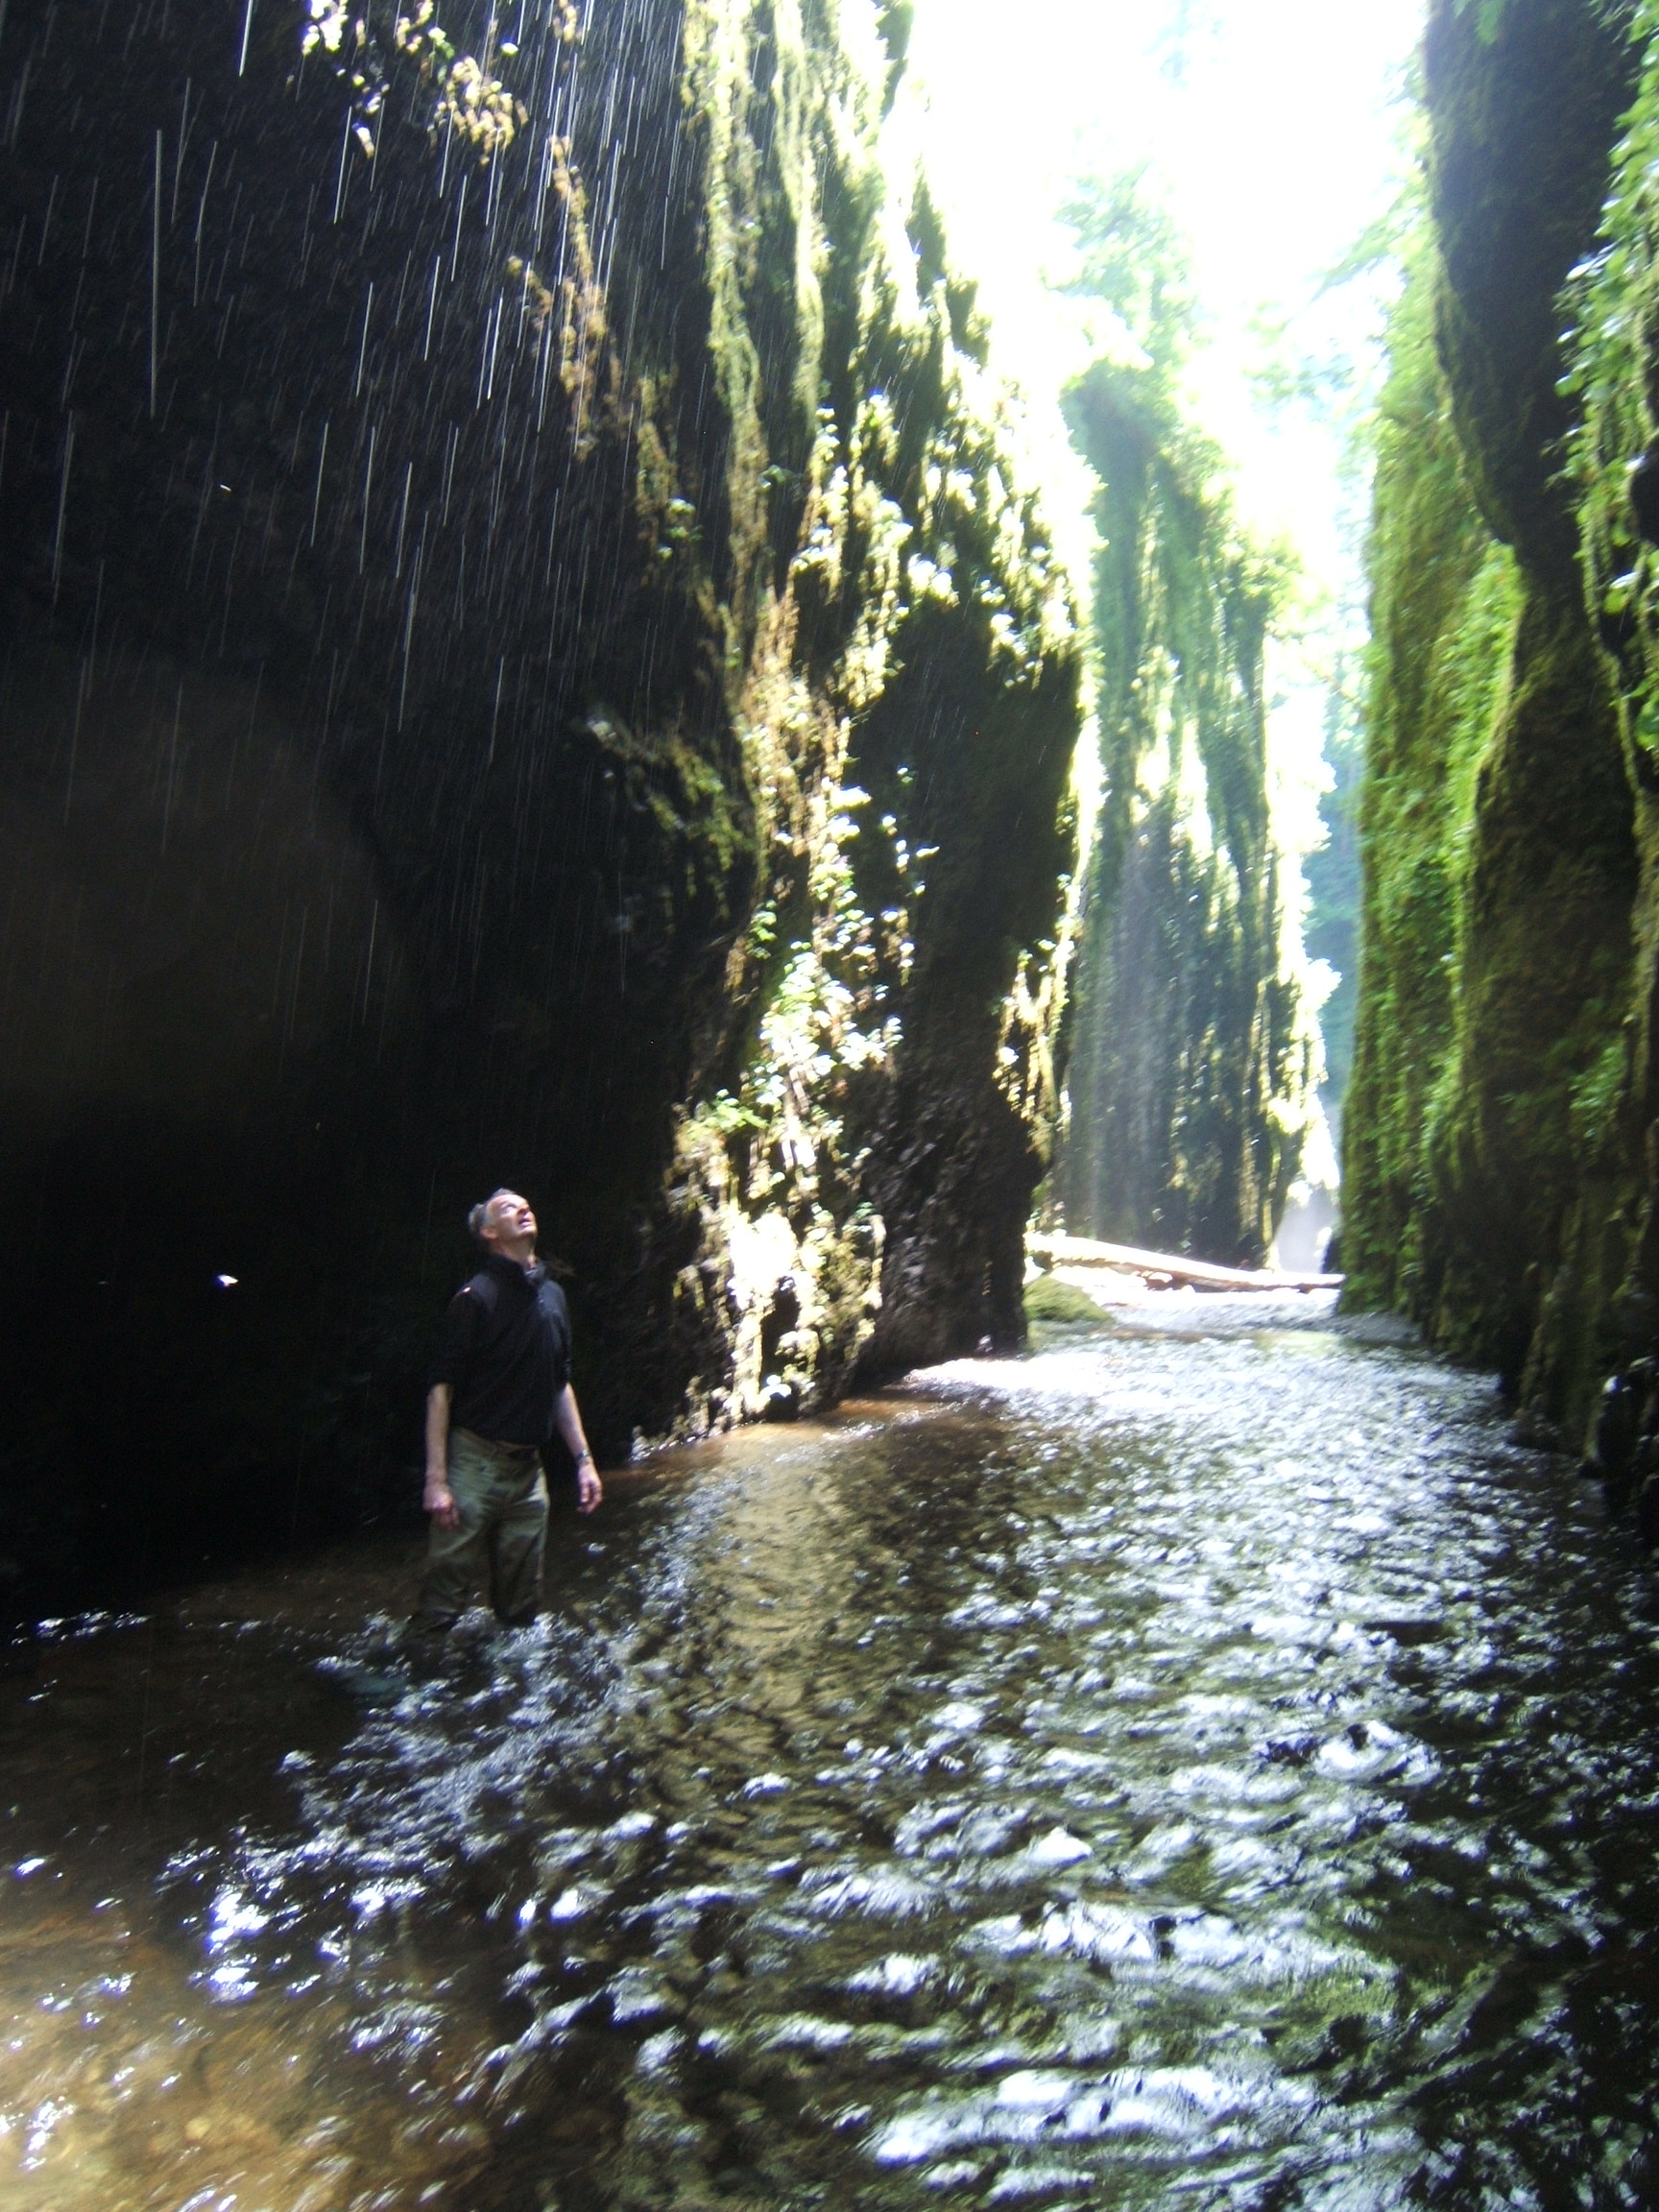 into the Oneonta Gorge